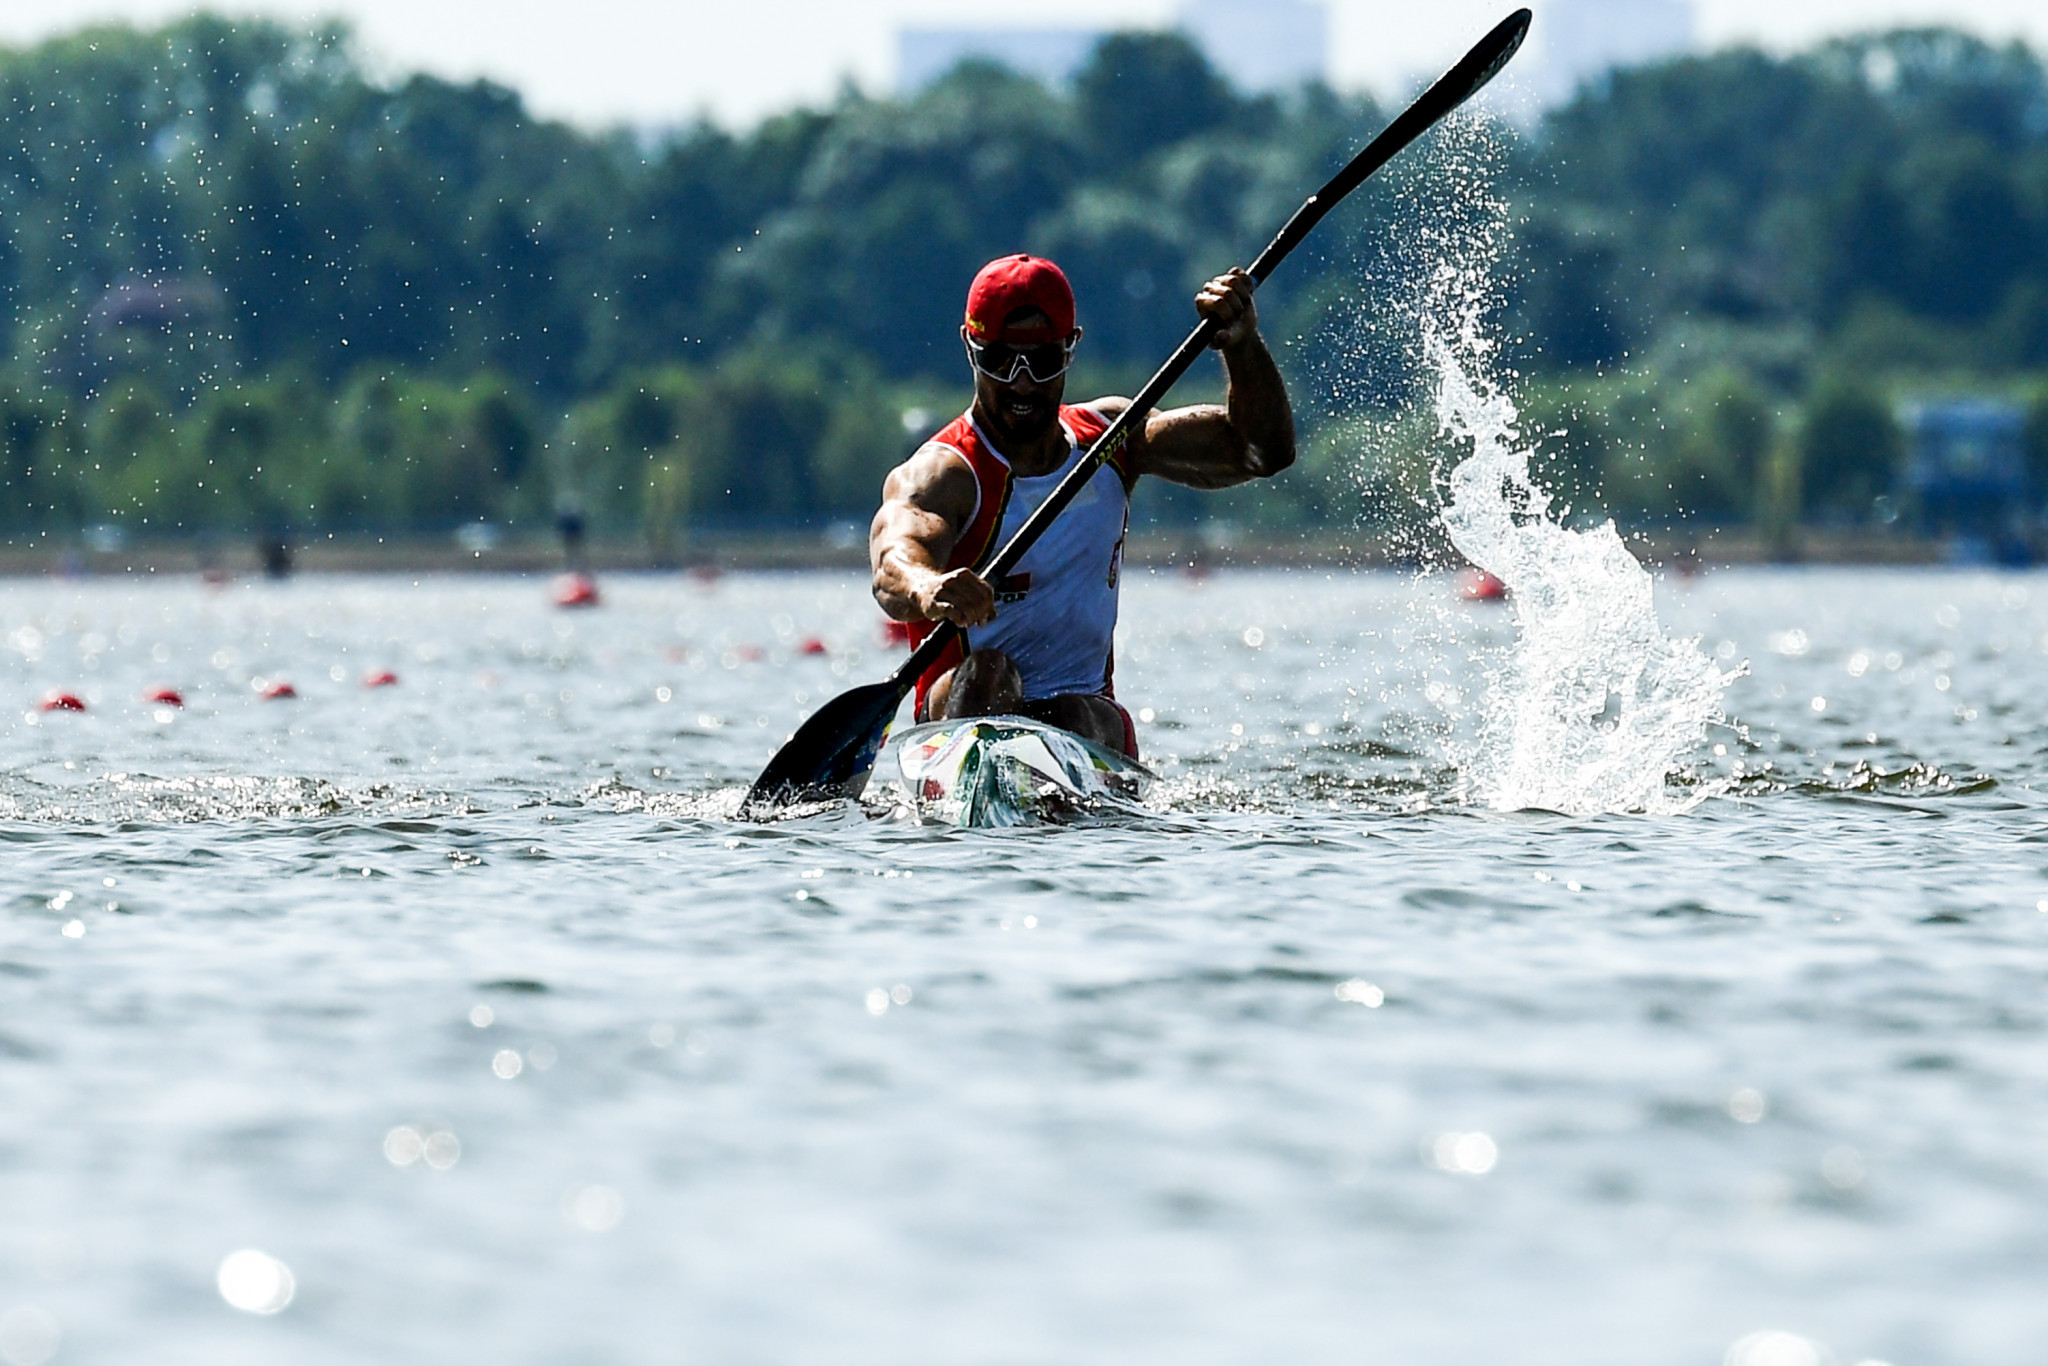 World champions Harrison and Kopasz reach finals at Szeged Canoe Sprint World Cup